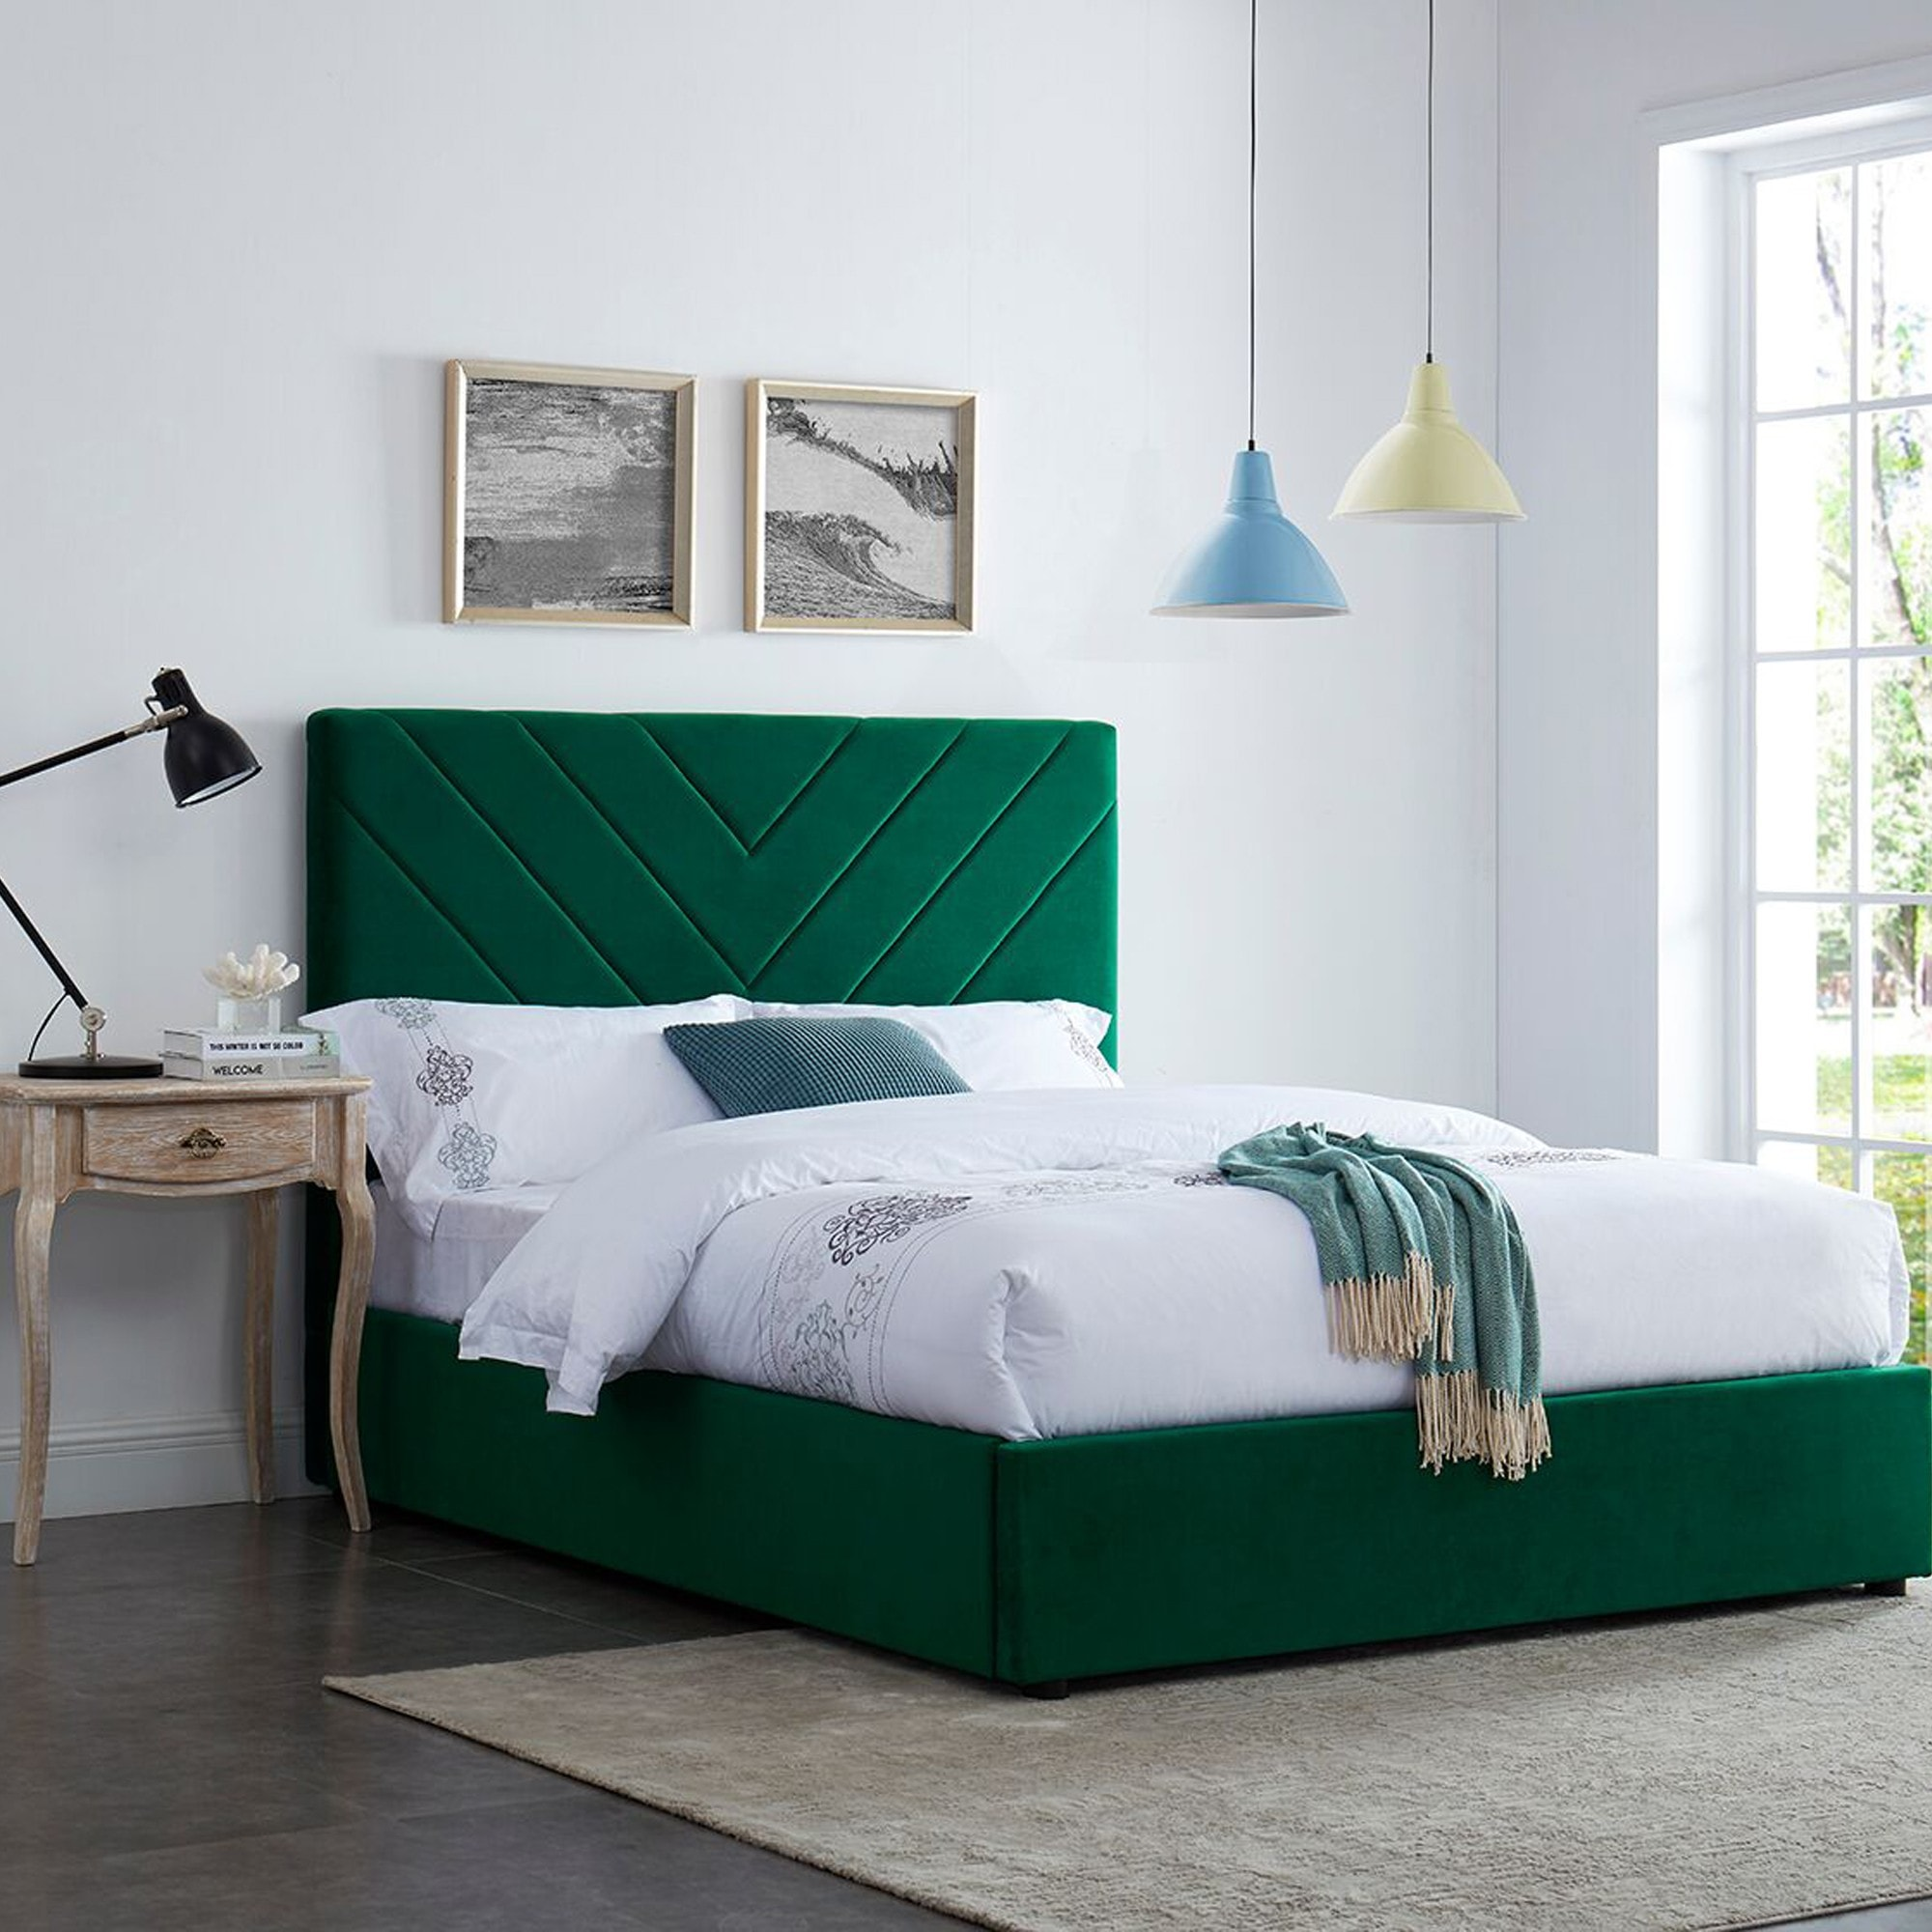 islington green double bed  green double bed  green